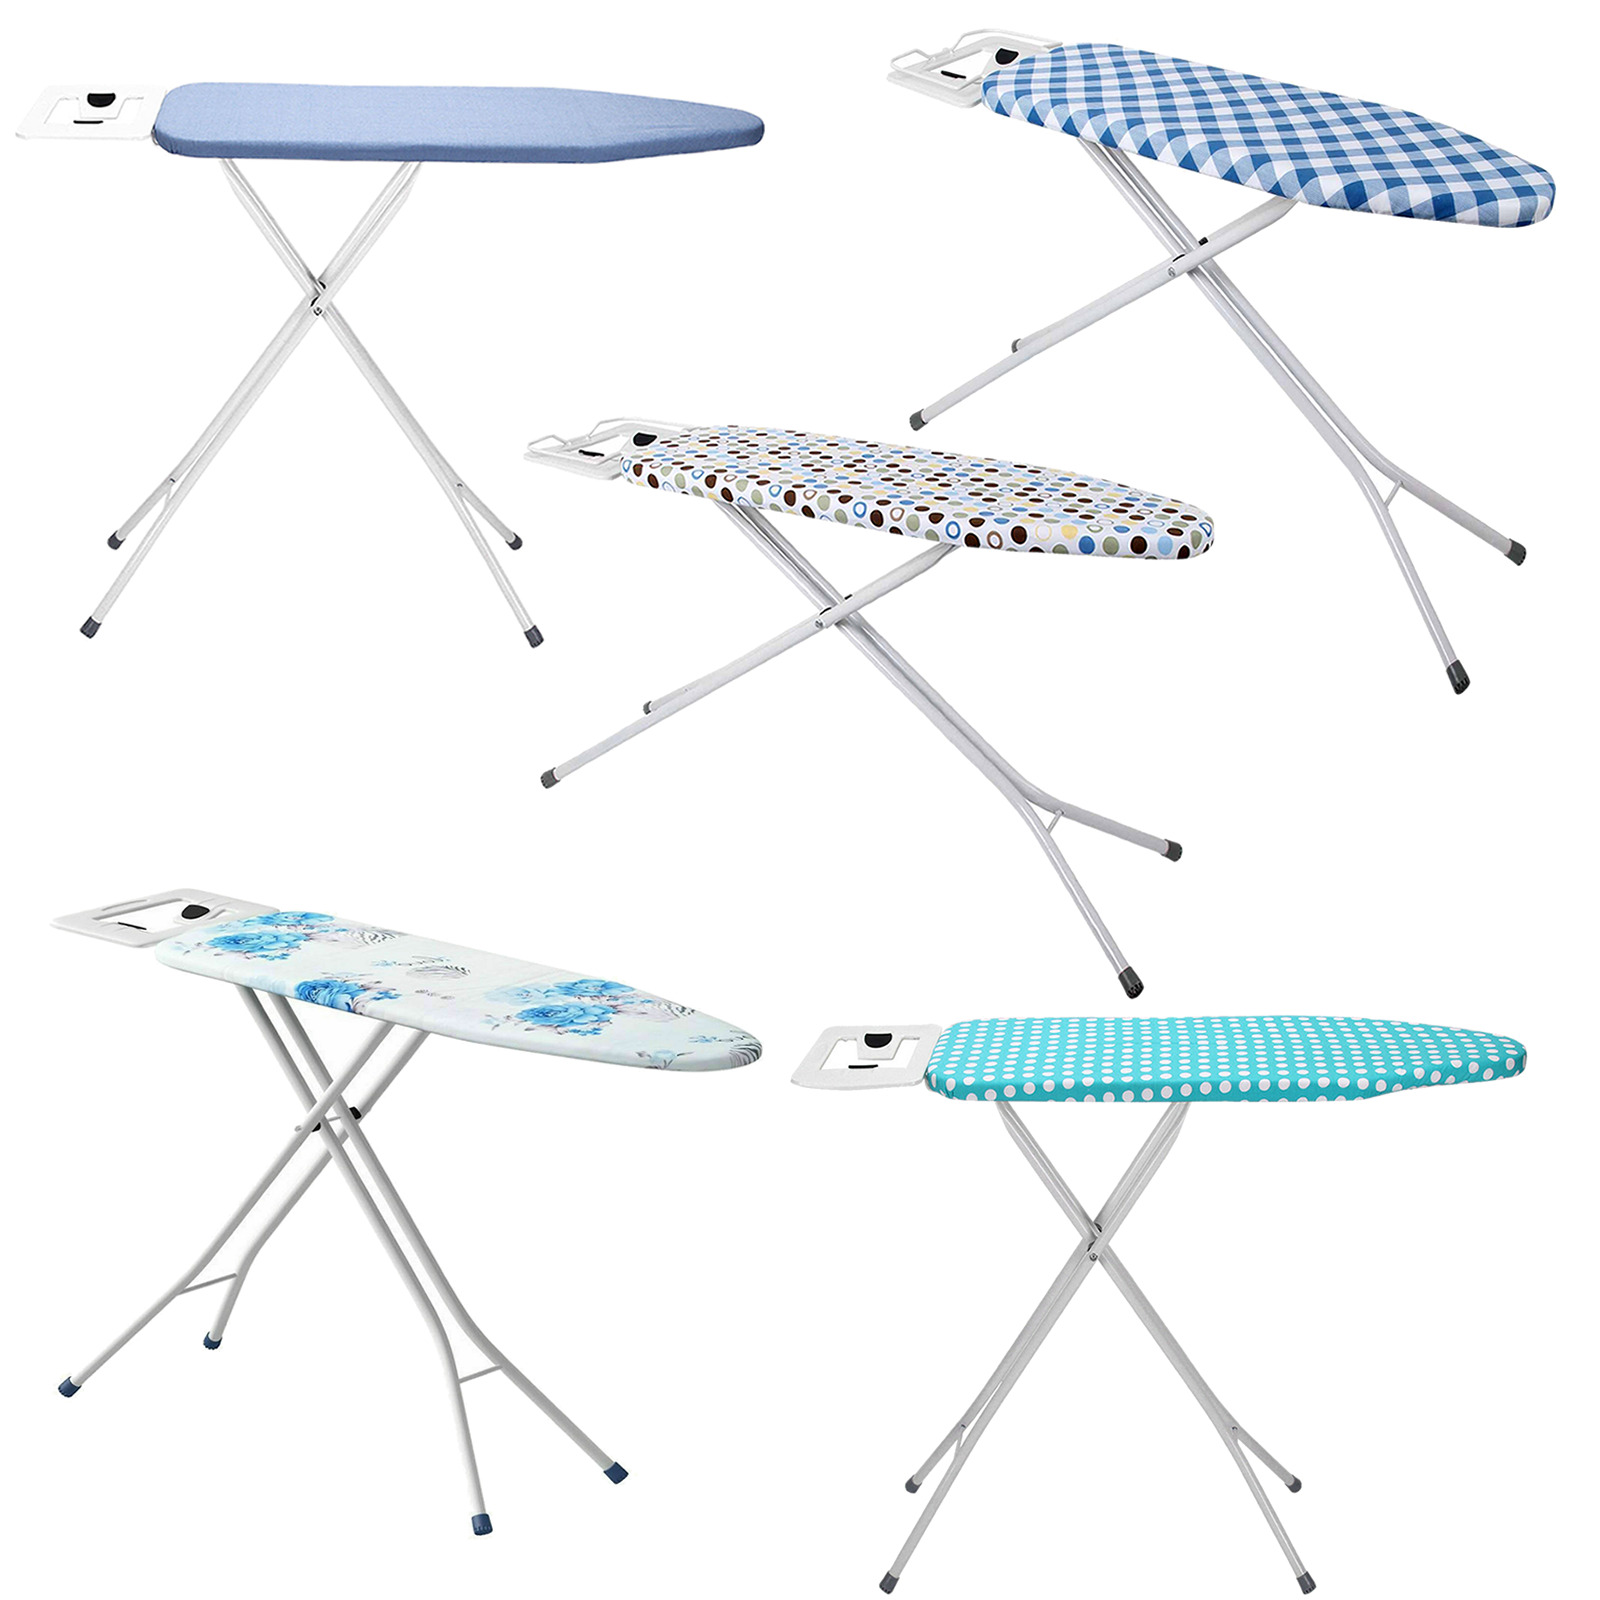 IRONING BOARD DELUXE WIDE FOLDING METAL IRON RACK FOLDABLE ADJUSTABLE HEIGHT